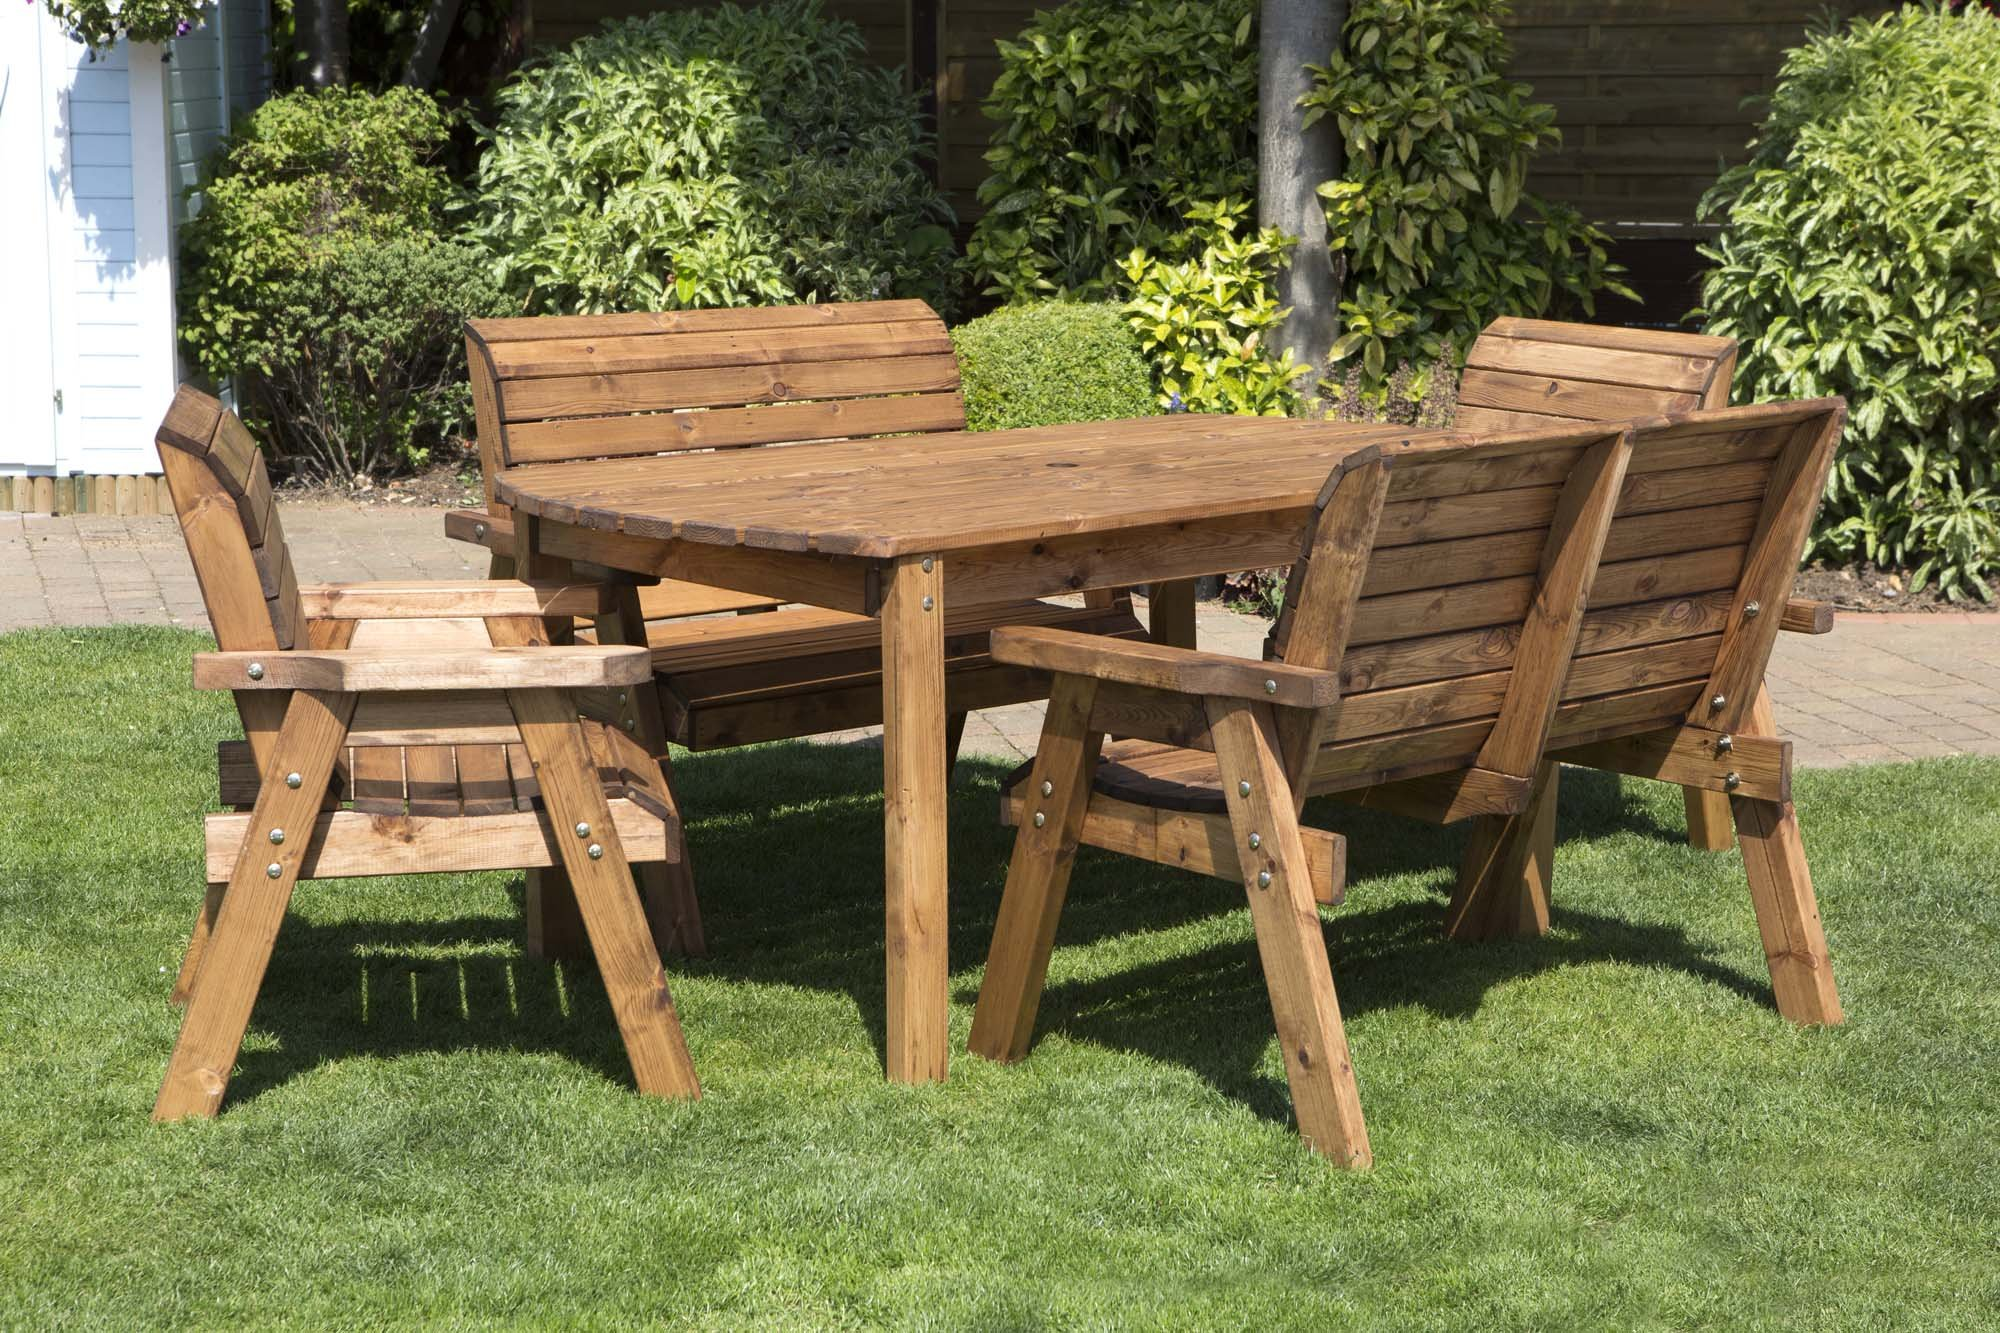 Samuel ALEXANDER Hand Made 9 Seater Chunky Rustic Wooden Garden Furniture  Table and Chairs Set